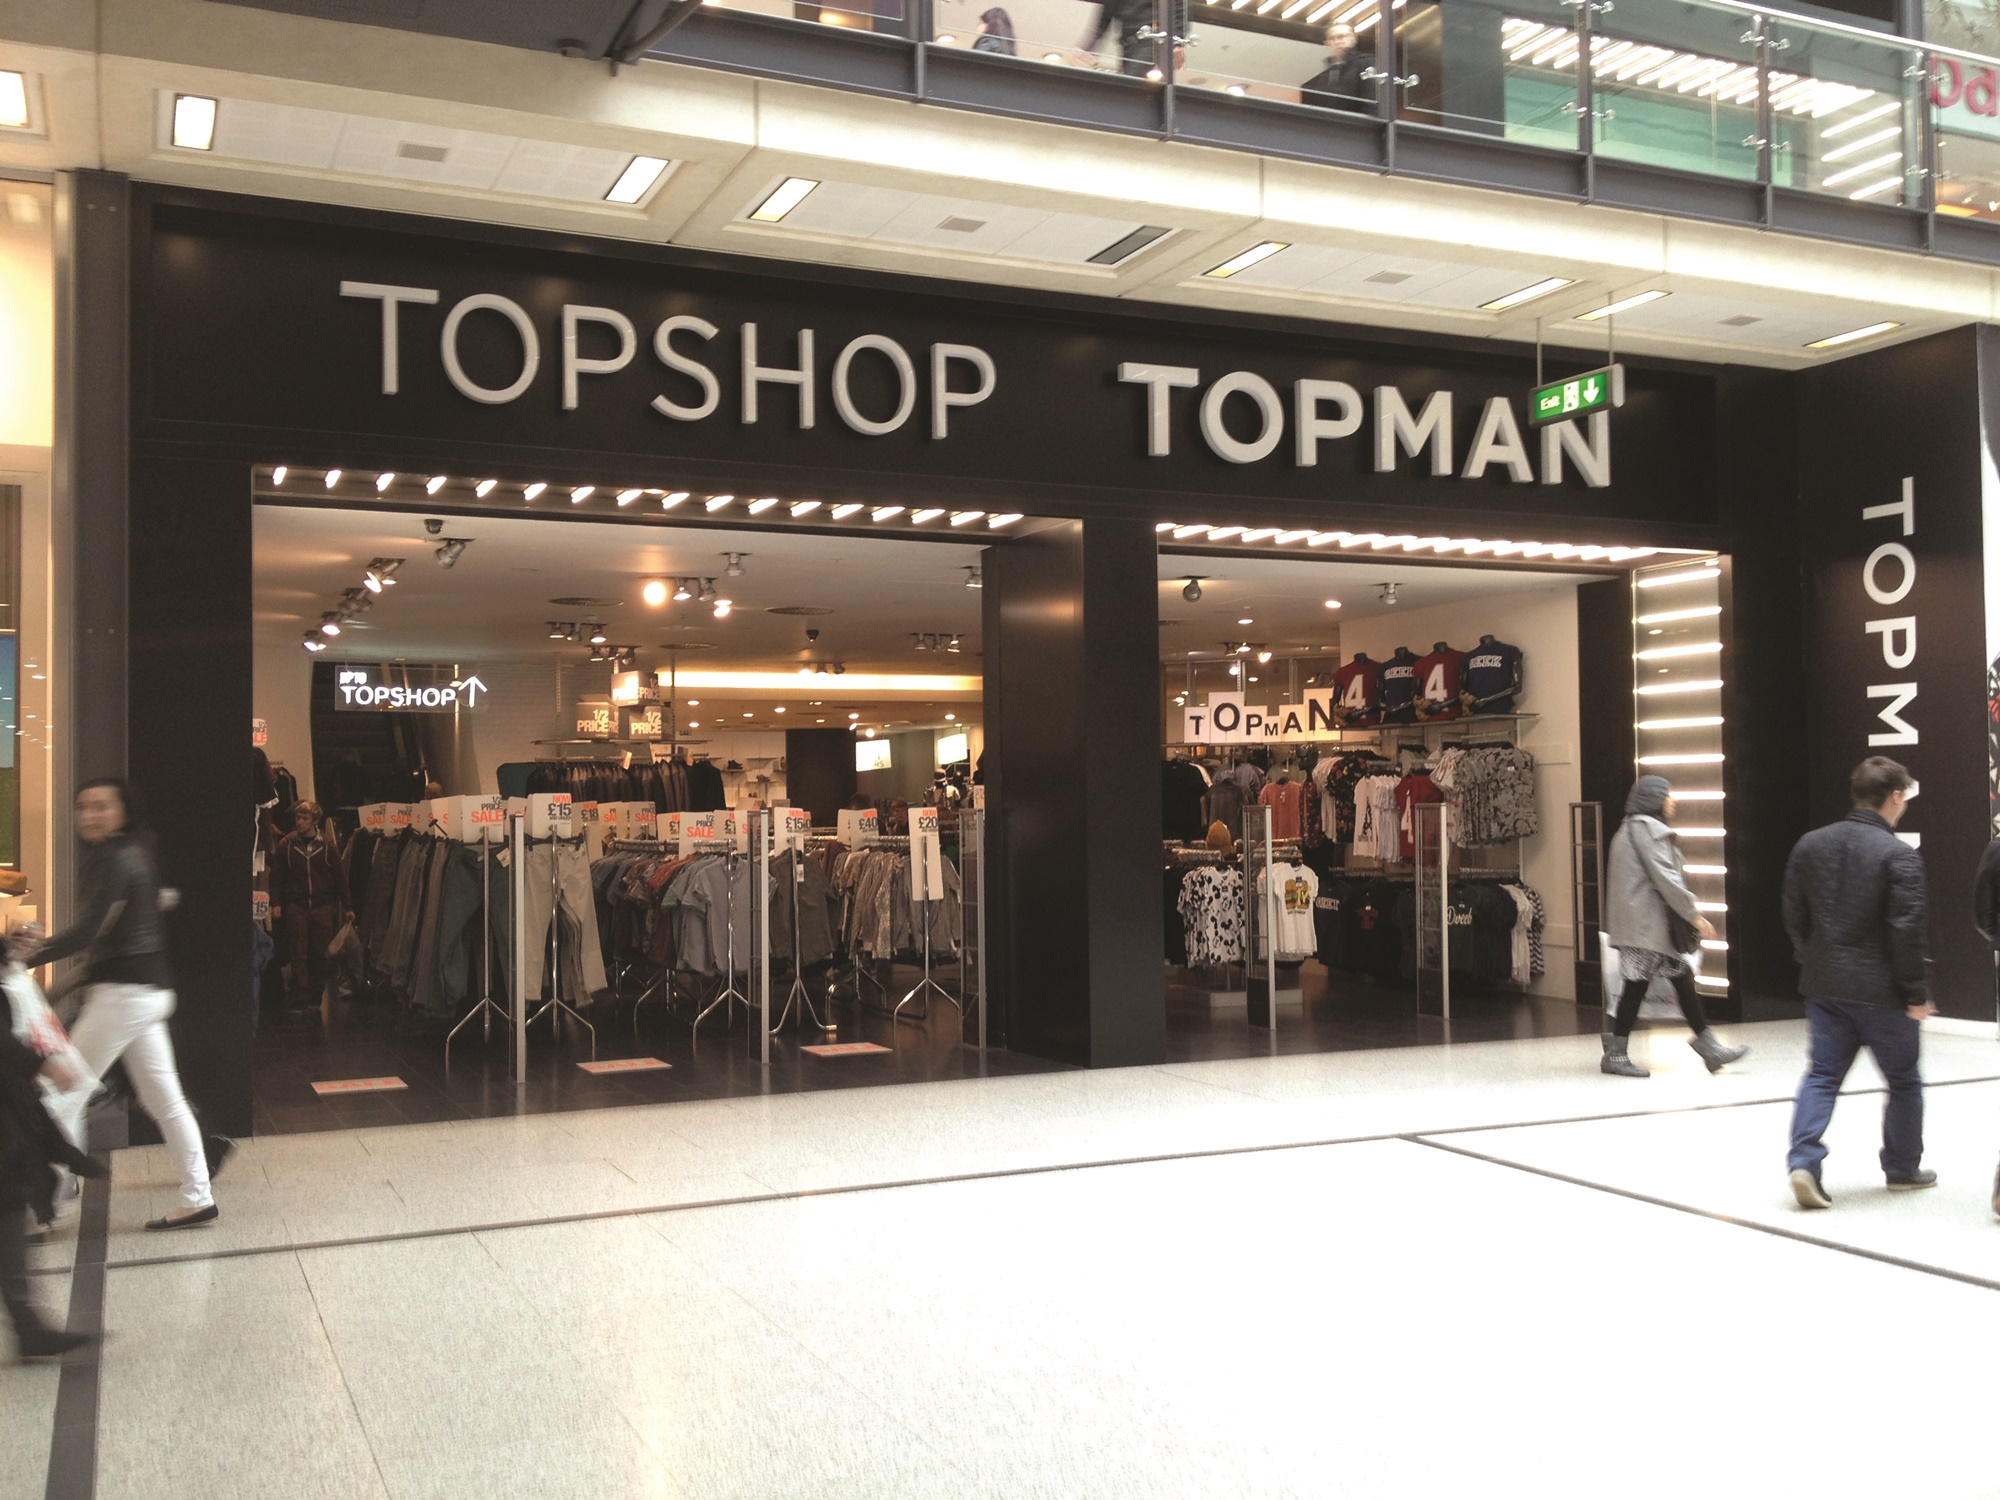 Topshop fashion retail store